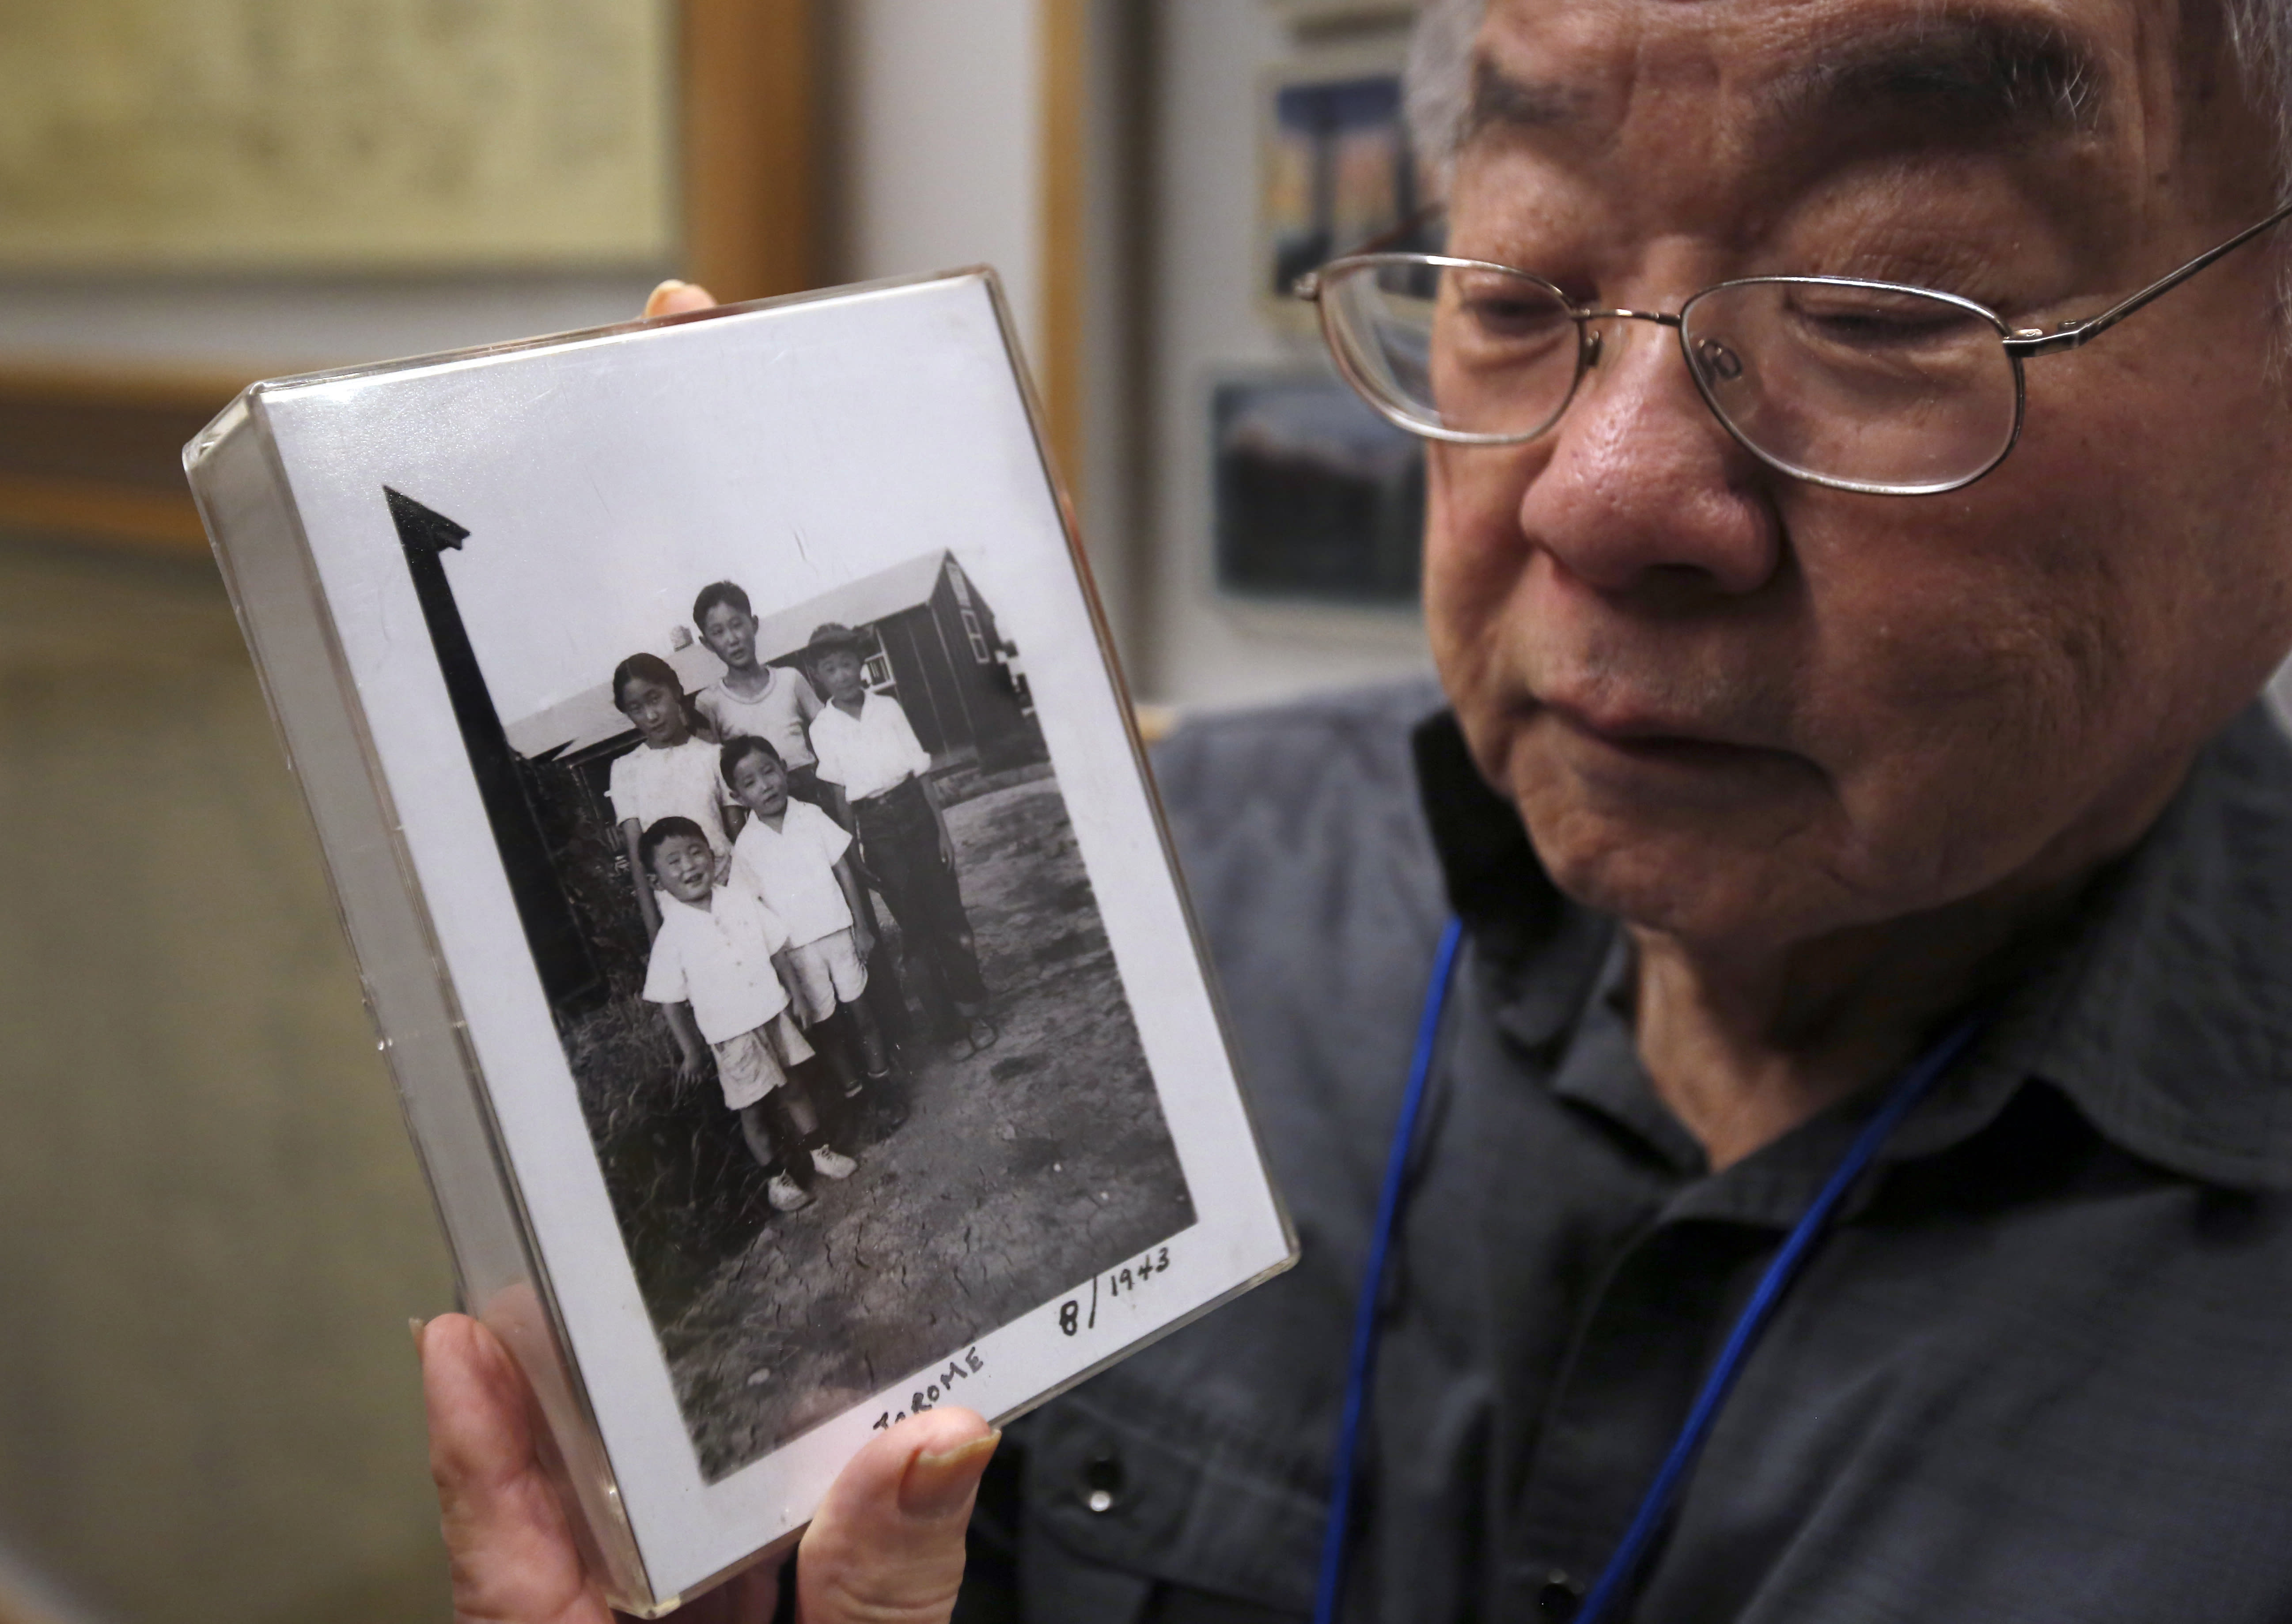 """In this photo taken Tuesday, Feb. 11, 2020, Les Ouchida holds a 1943 photo of himself, front row, center, and his siblings taken at the internment camp his family was moved to, as he poses at the permanent exhibit titled """"UpRooted Japanese Americans in World War II"""" at the California Museum in Sacramento, Calif. Ochida, who is a docent for the exhibit, and his family were forced to move in 1942 from their home near Sacramento to a camp in Jerome, Arkansas. Assemblyman Al Muratsuchi, D-Torrence has introduced a resolution to apologize for the state's role in carrying out the federal government's internment of Japanese-Americans. A similar resolution will be brought up before the state Senate by Sen. Richard Pan, D-Sacramento.(AP Photo/Rich Pedroncelli)"""